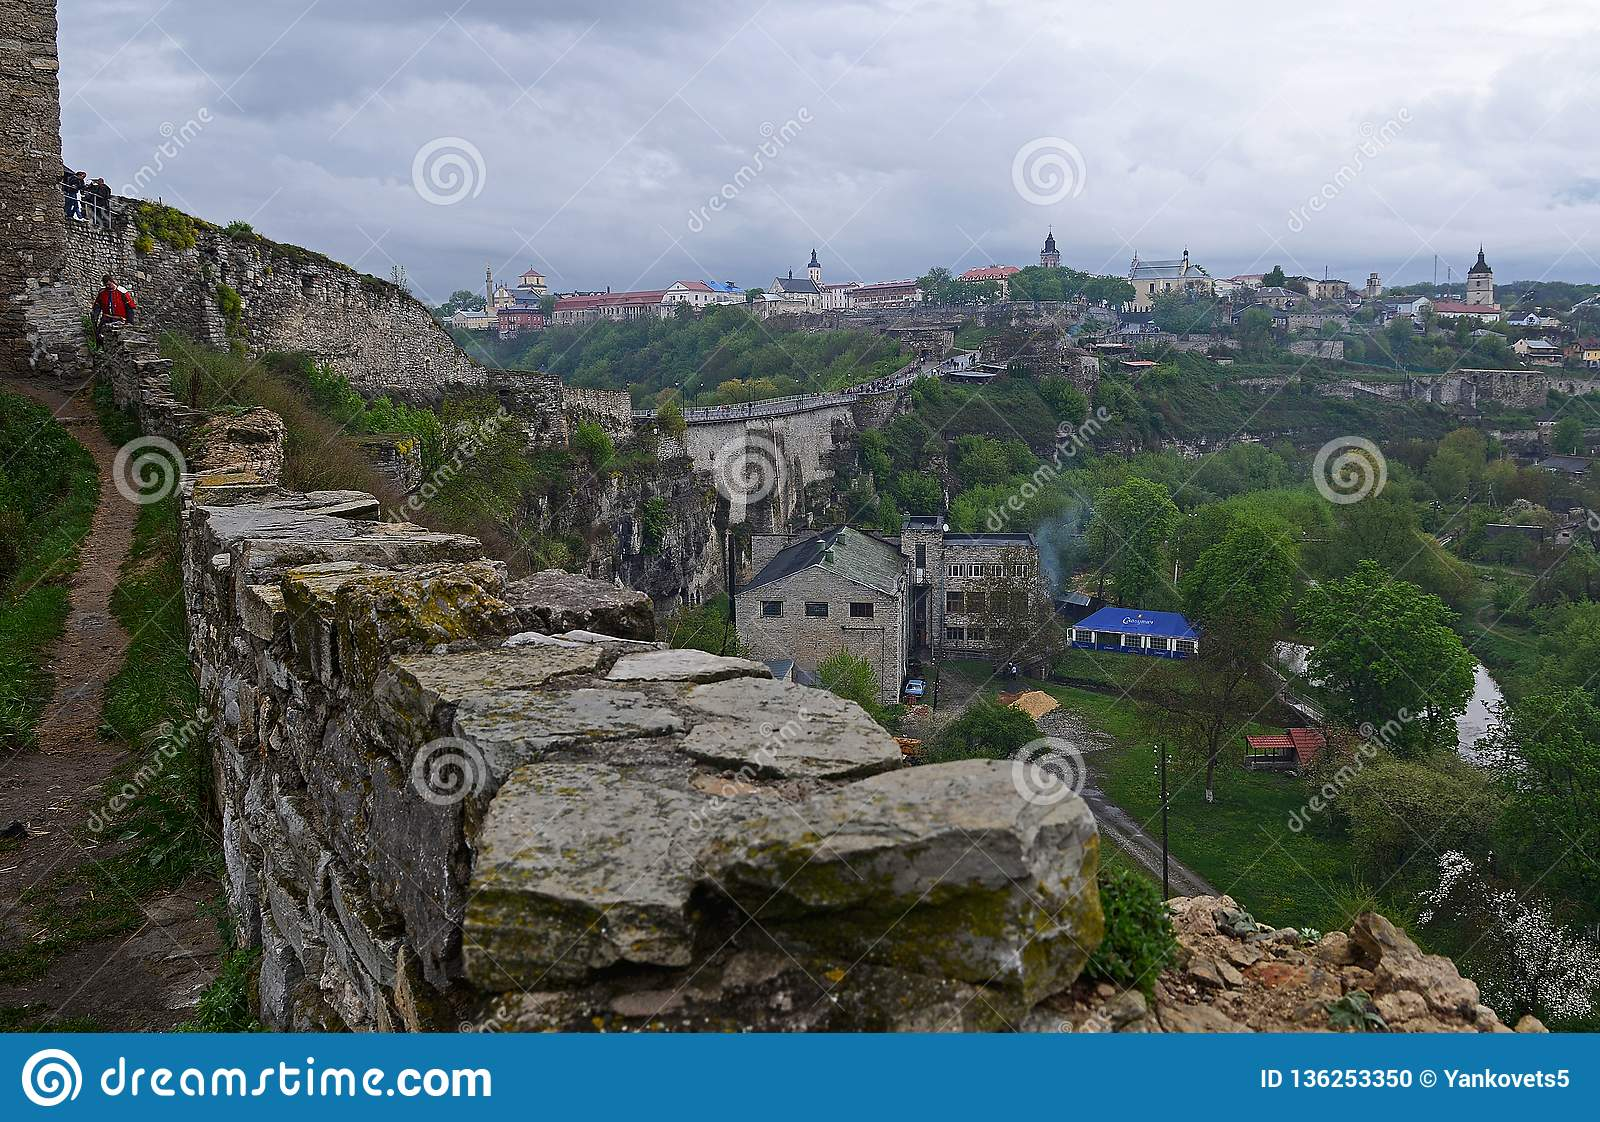 Ukraine, Kamyanets-Podilsky fortress in the rain on May 2, 2015